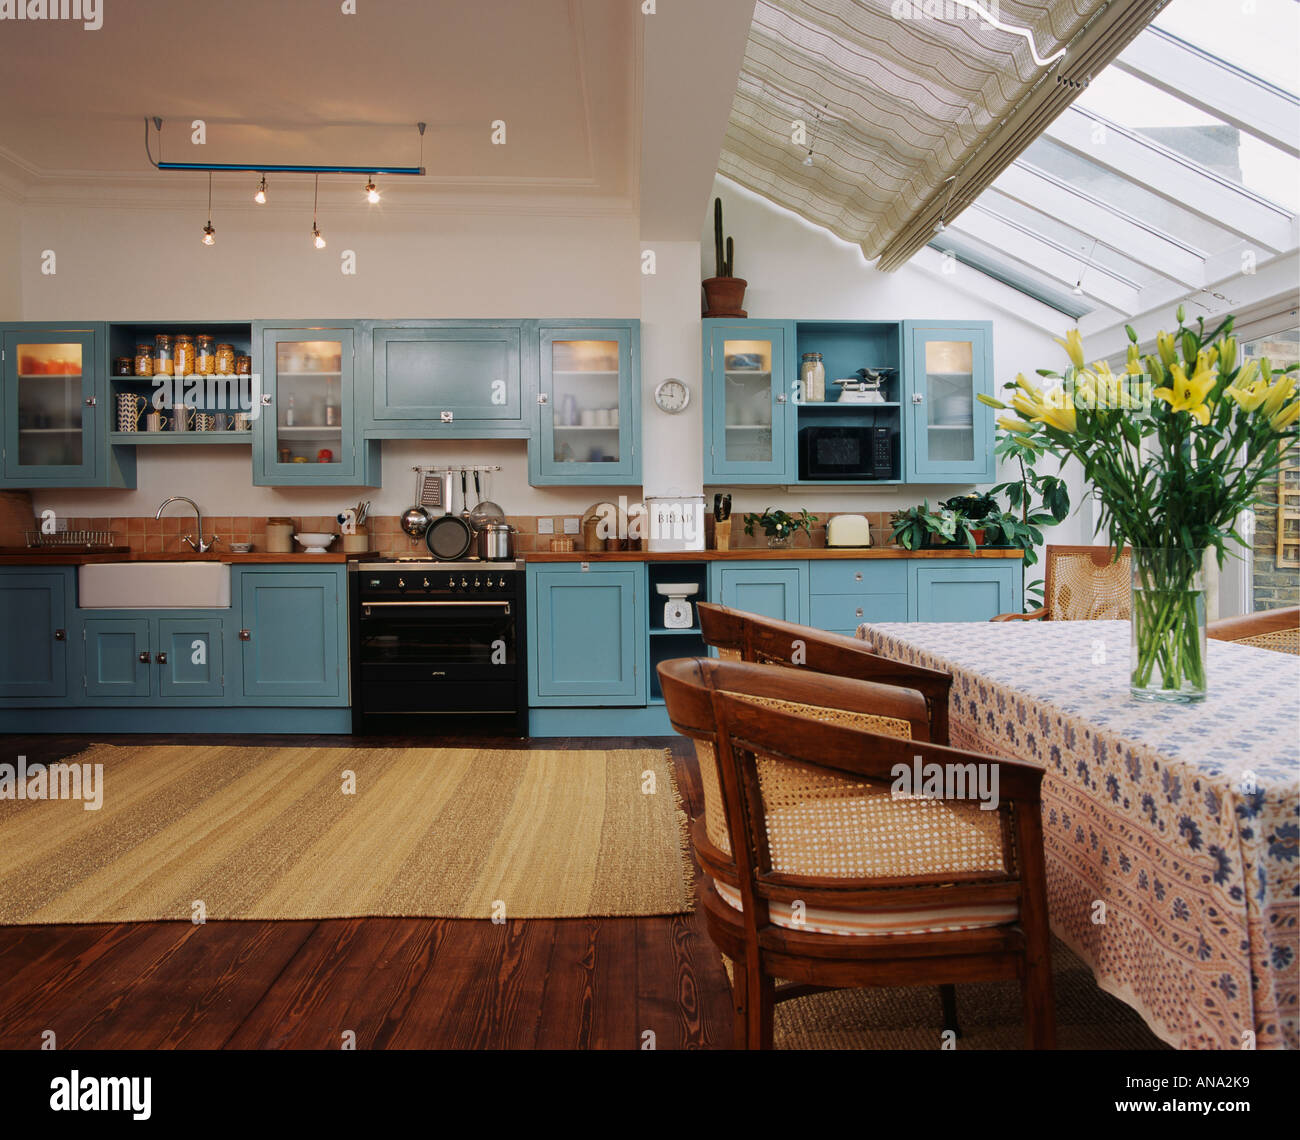 Glass Roof And Wooden Flooring In Spacious Openplan Kitchen Dining Room Extension With Turquoise Fitted Cupboards